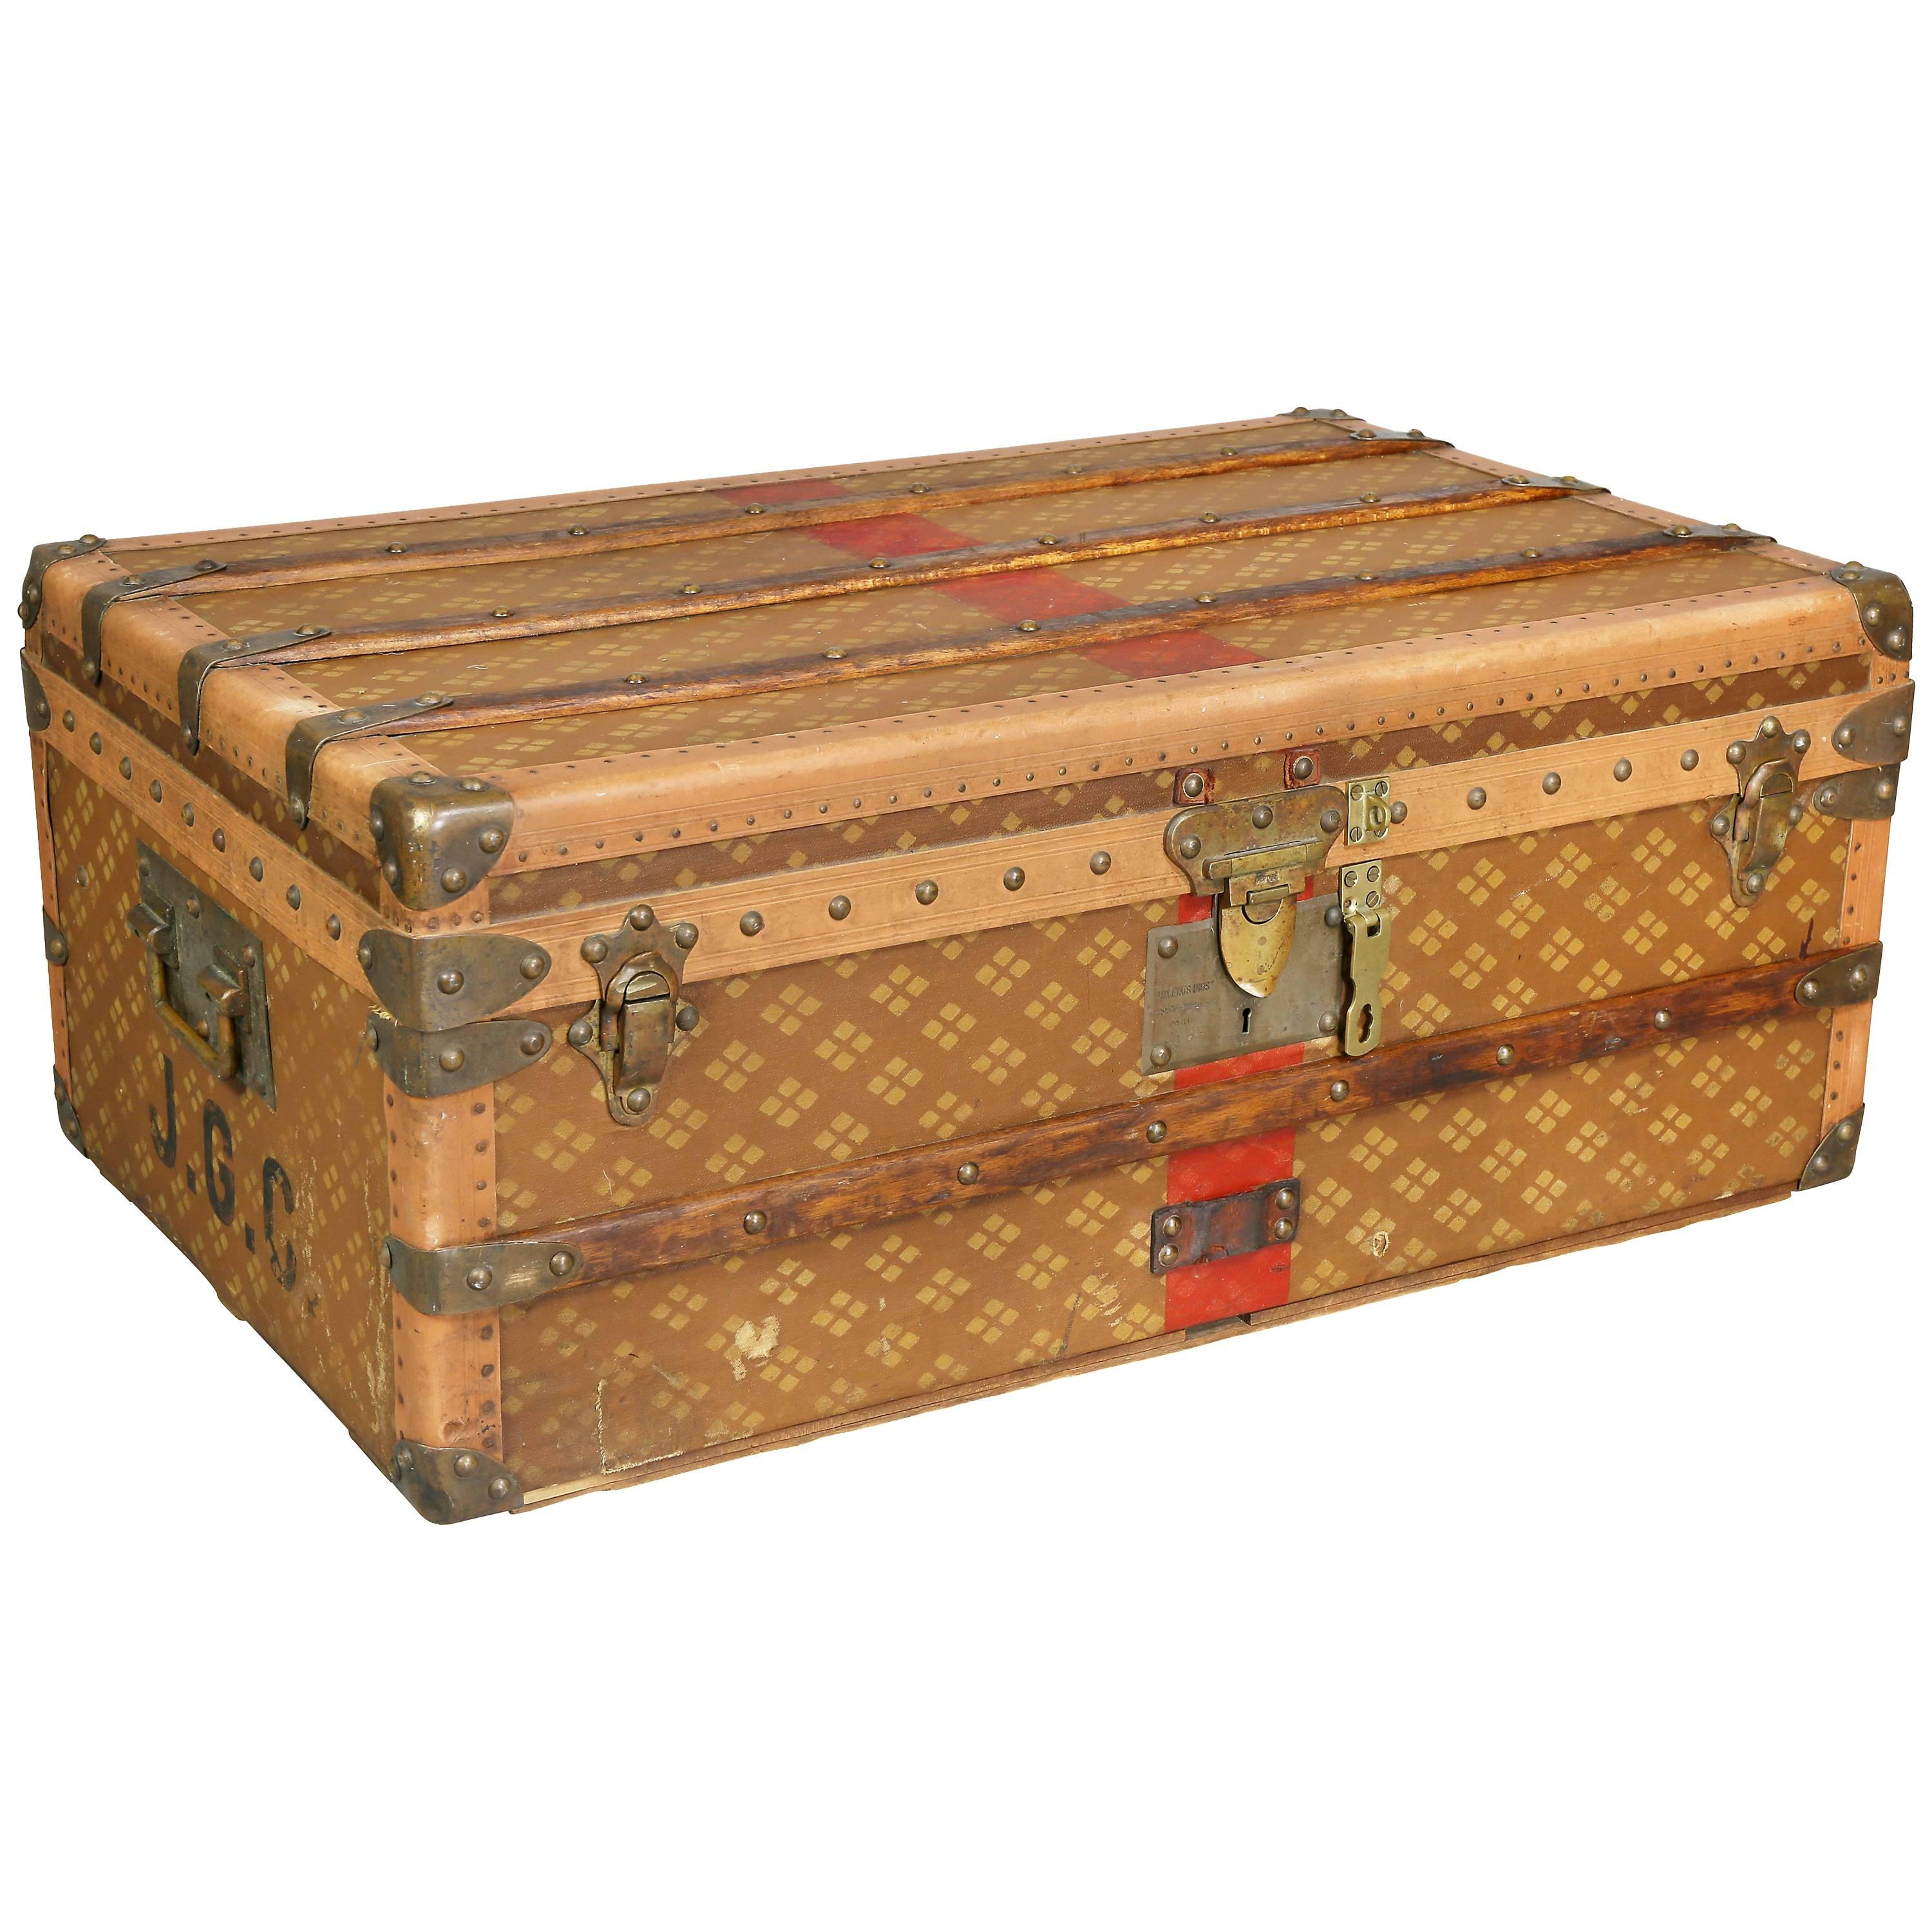 Boxes/chests Diplomatic Wood Bound Canvas Steamer Travel Trunk Old Luggage Suitcase Antiques